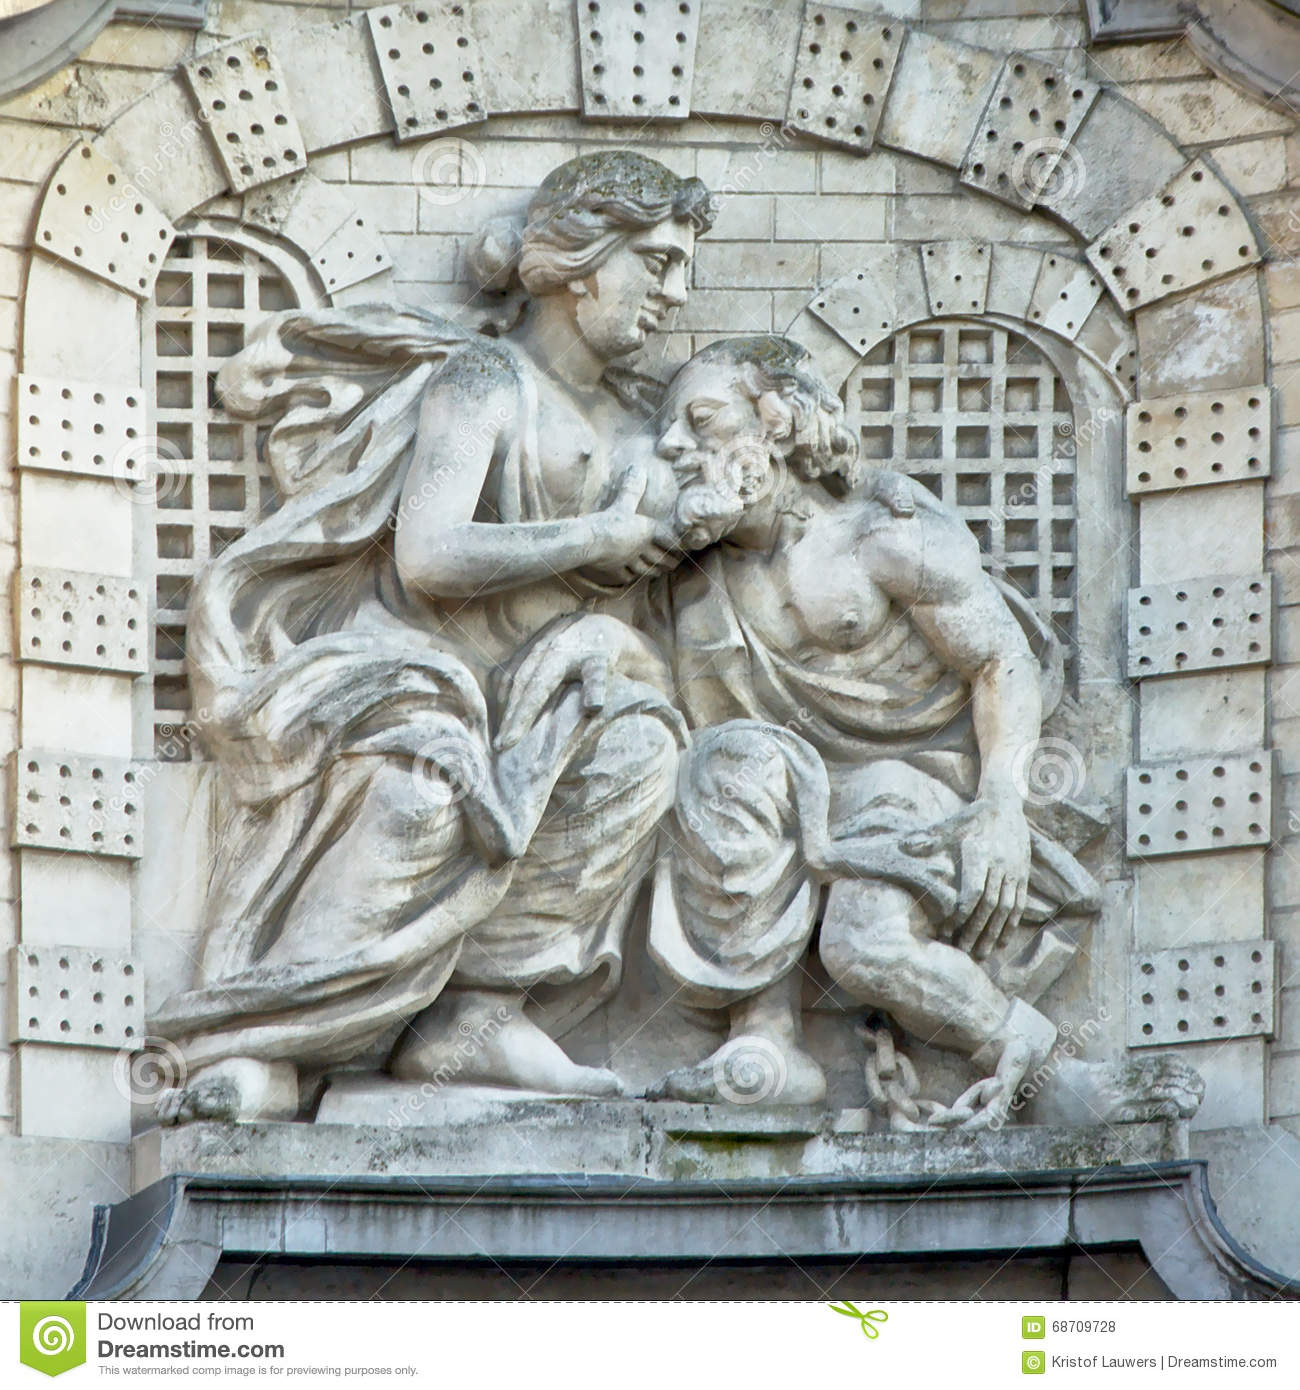 Statue By David 't Kindt, On The Ghent Linen Hall, Depicting The Legend Of  'Mamelokker' Stock Photo - Image of legend, ghent: 68709728